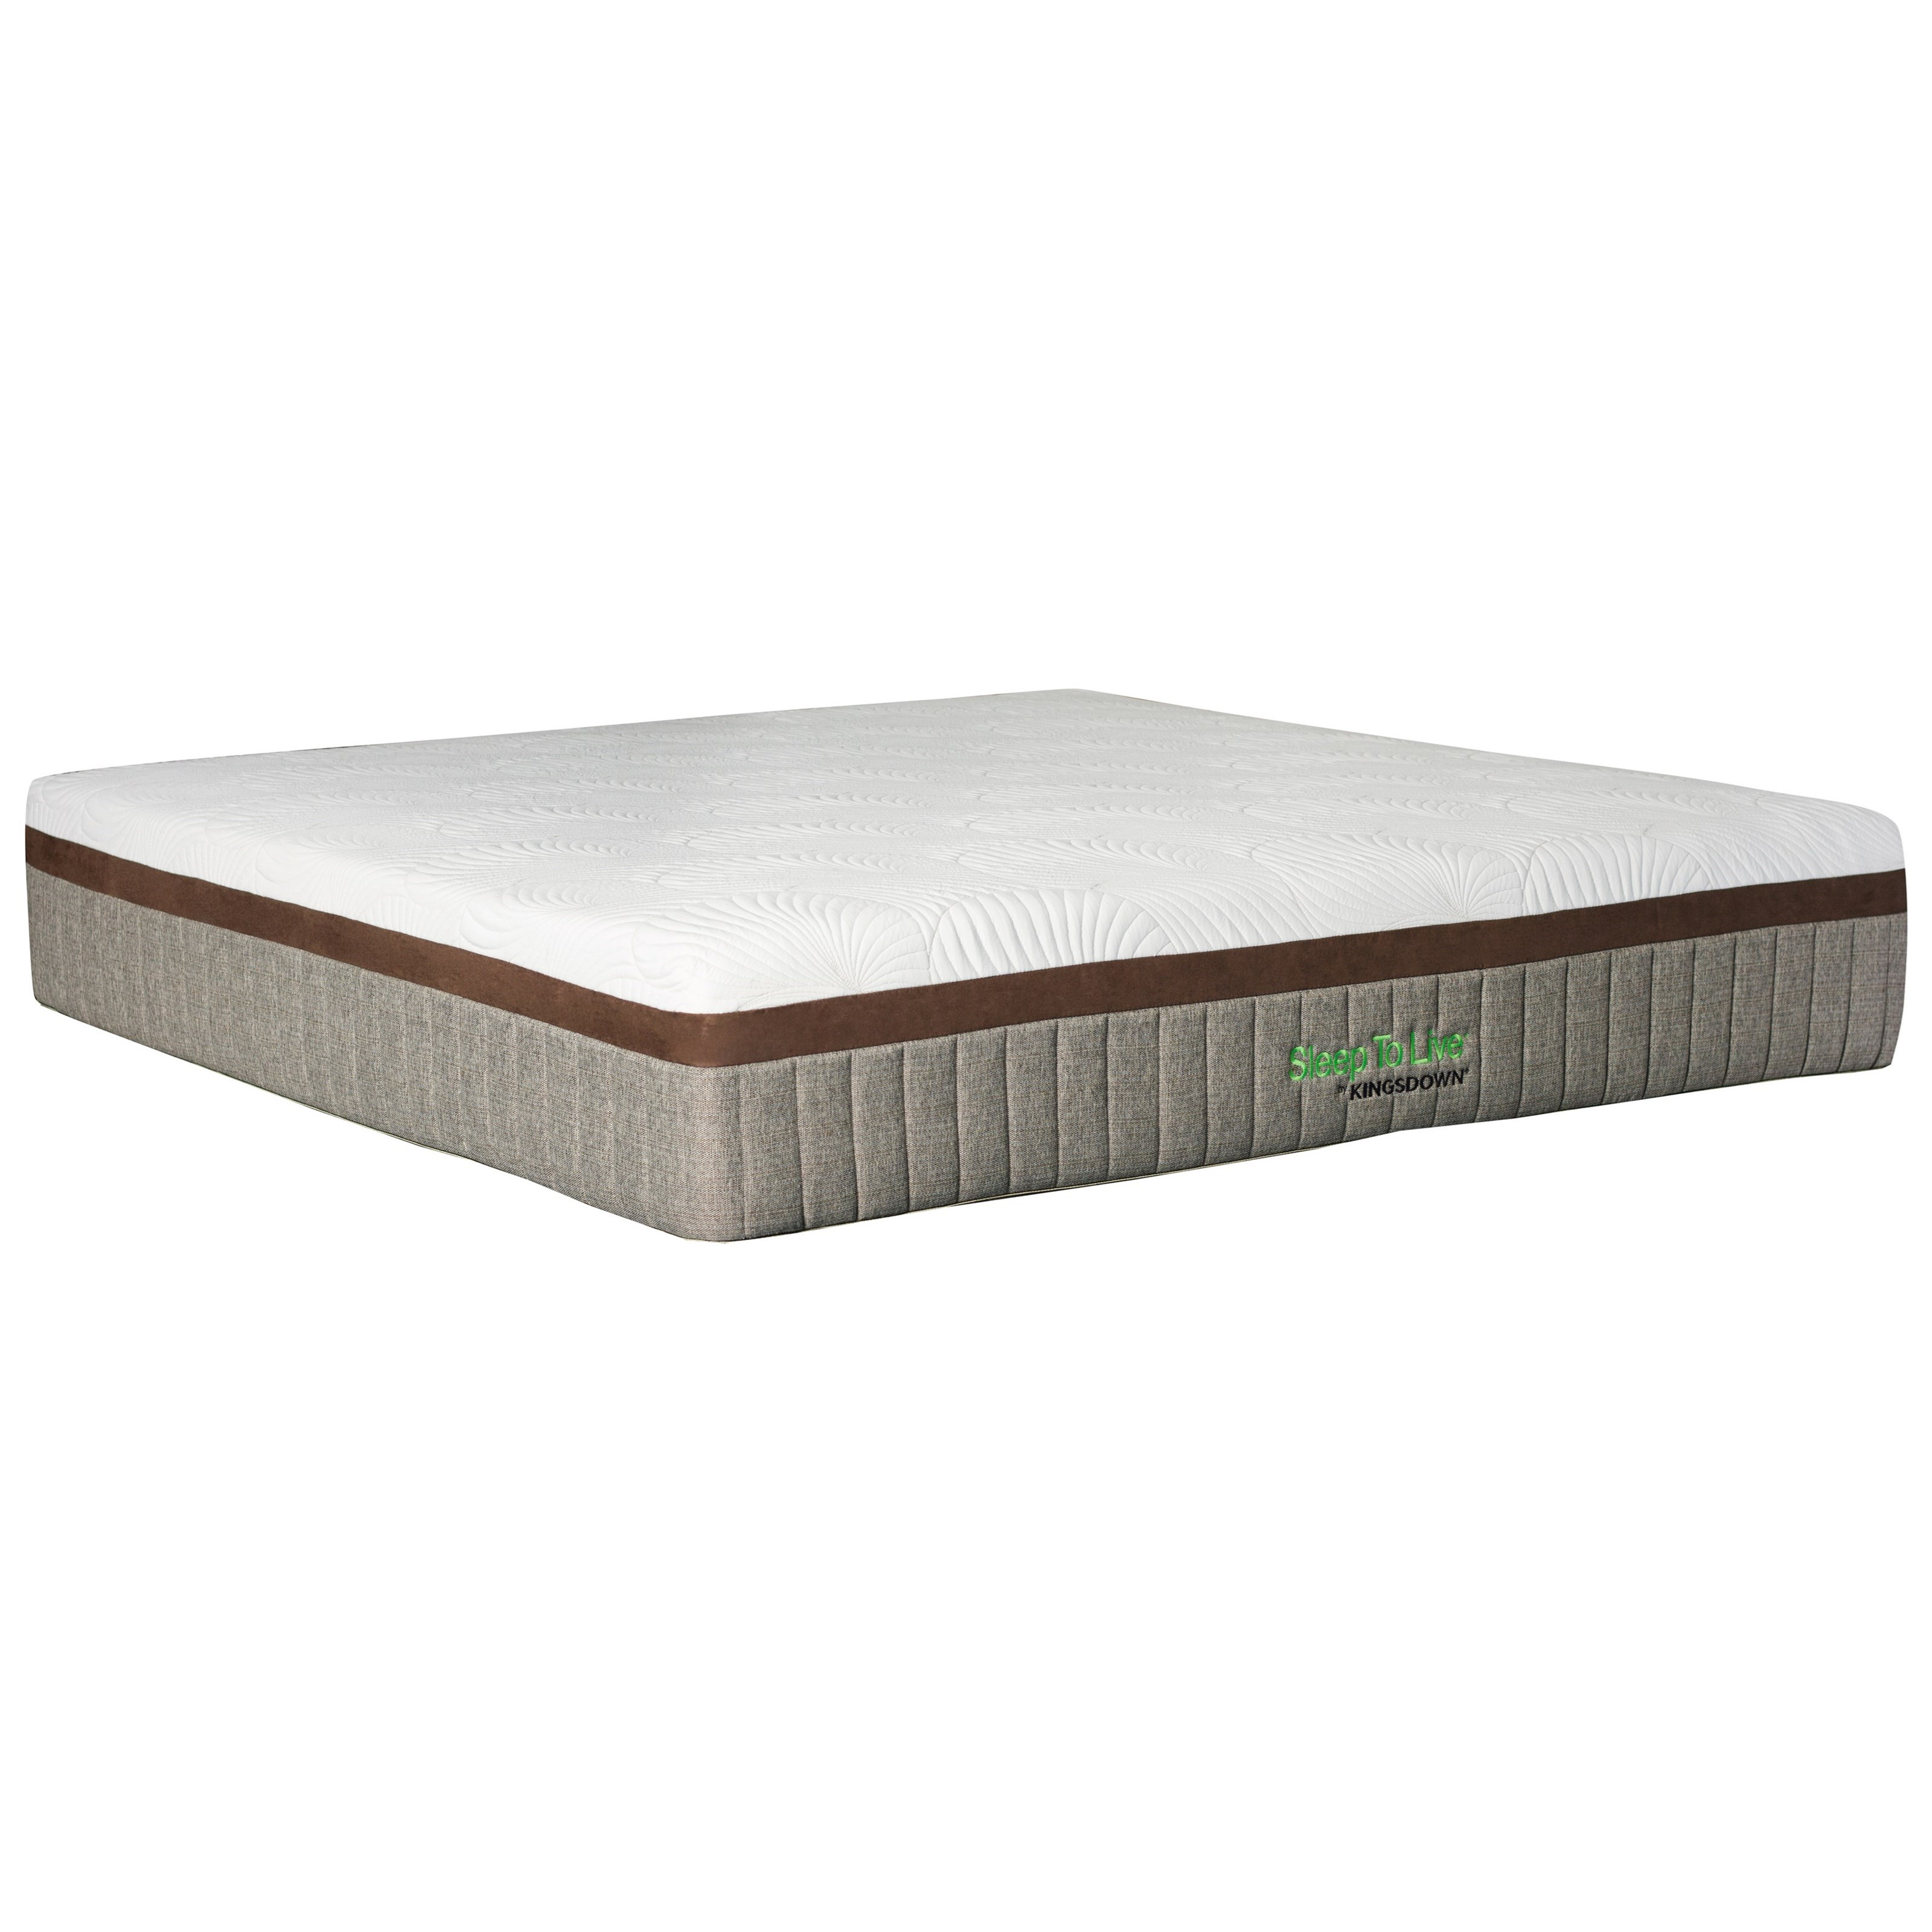 "Kingsdown 700 Series 5819 Red Full 15"" Extra Firm Memory Foam Mattress - Item Number: Red5819-F"